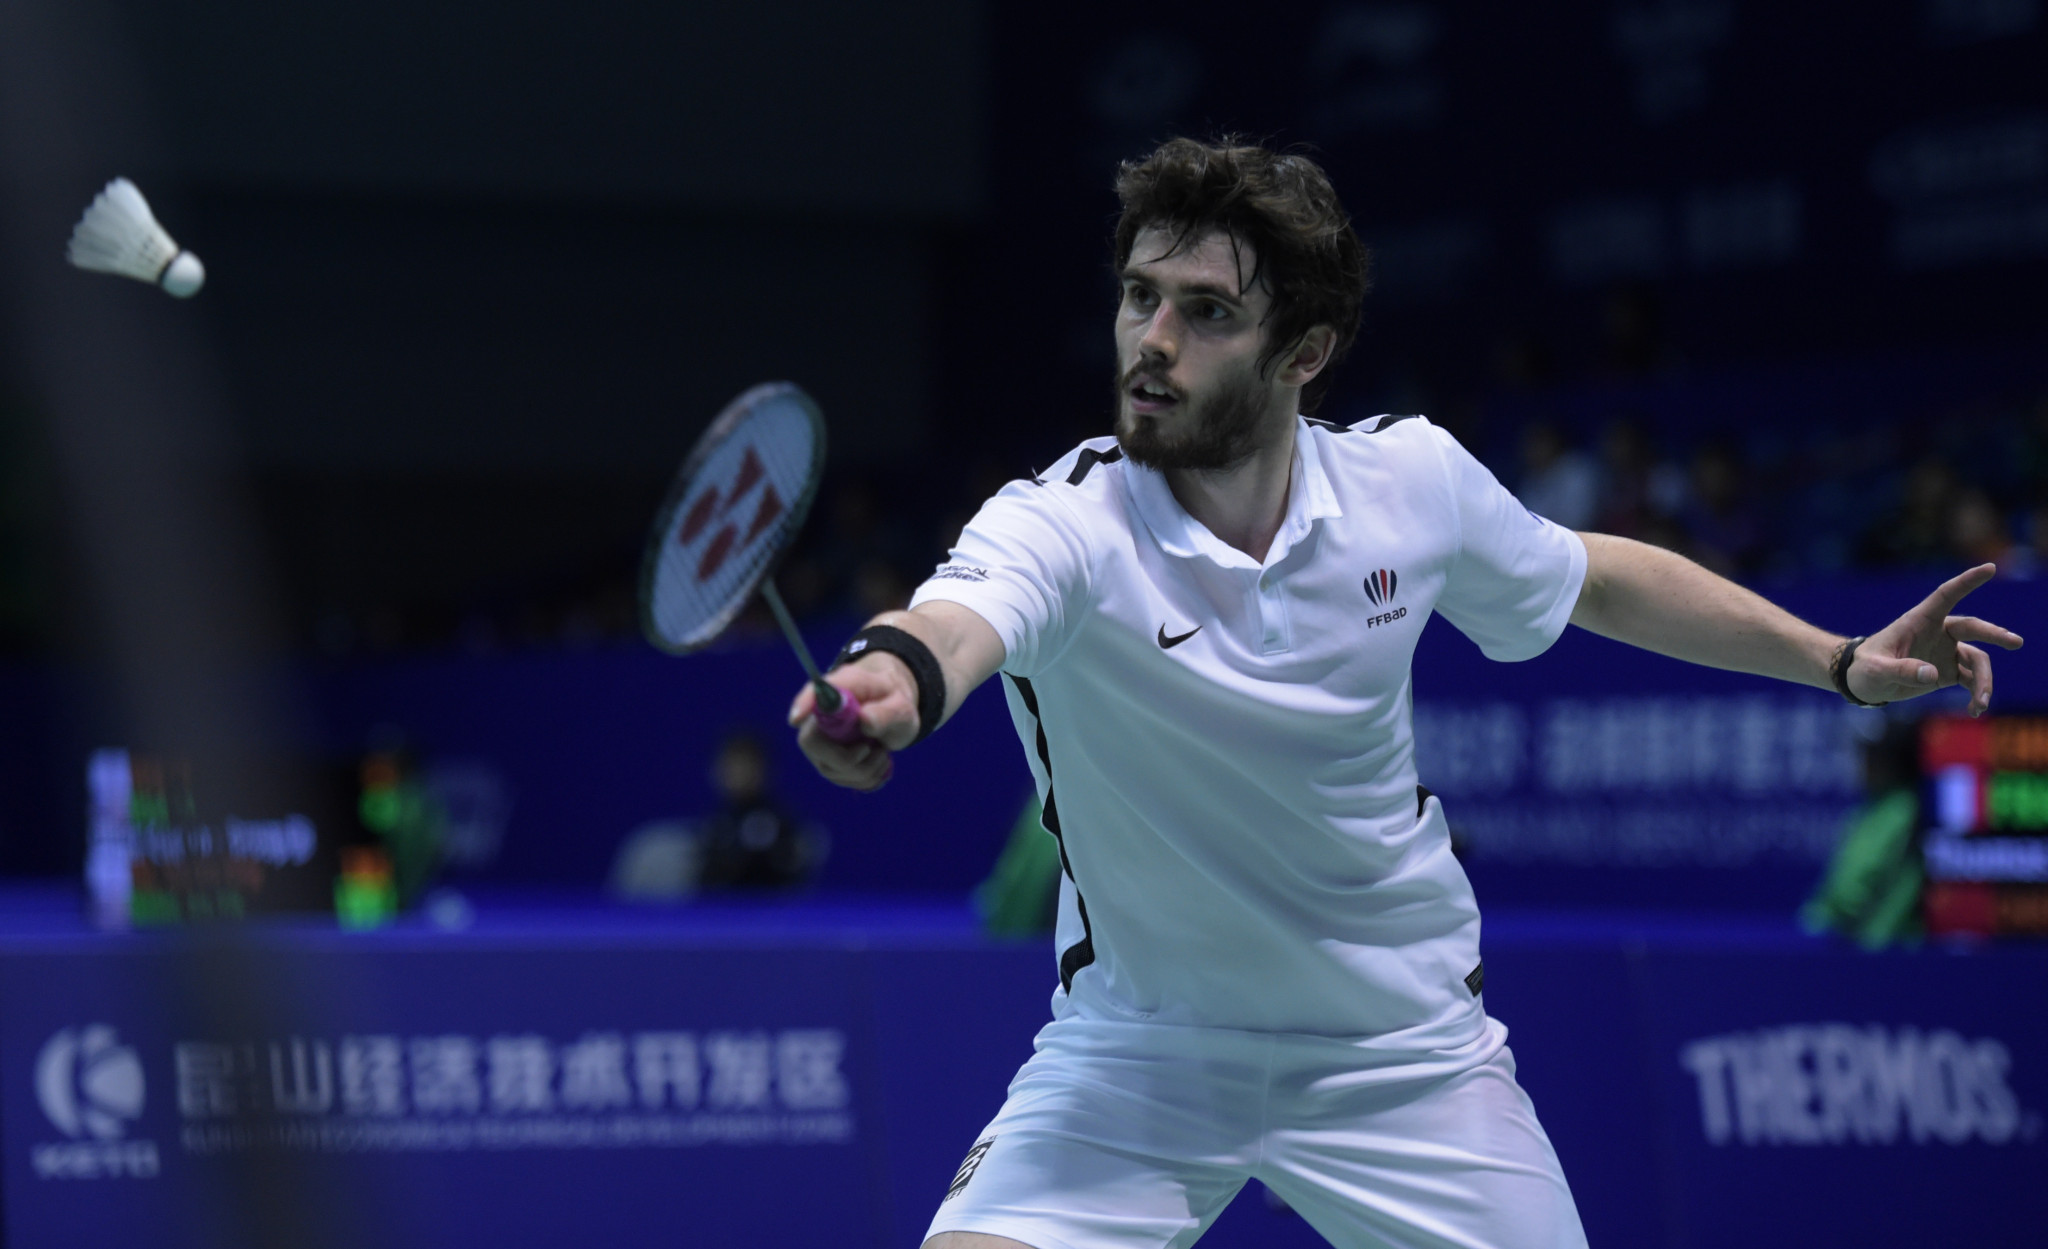 France's Thomas Rouxel will now play Buenos Aires 2018 champion Li Shifeng in the first round ©Getty Images